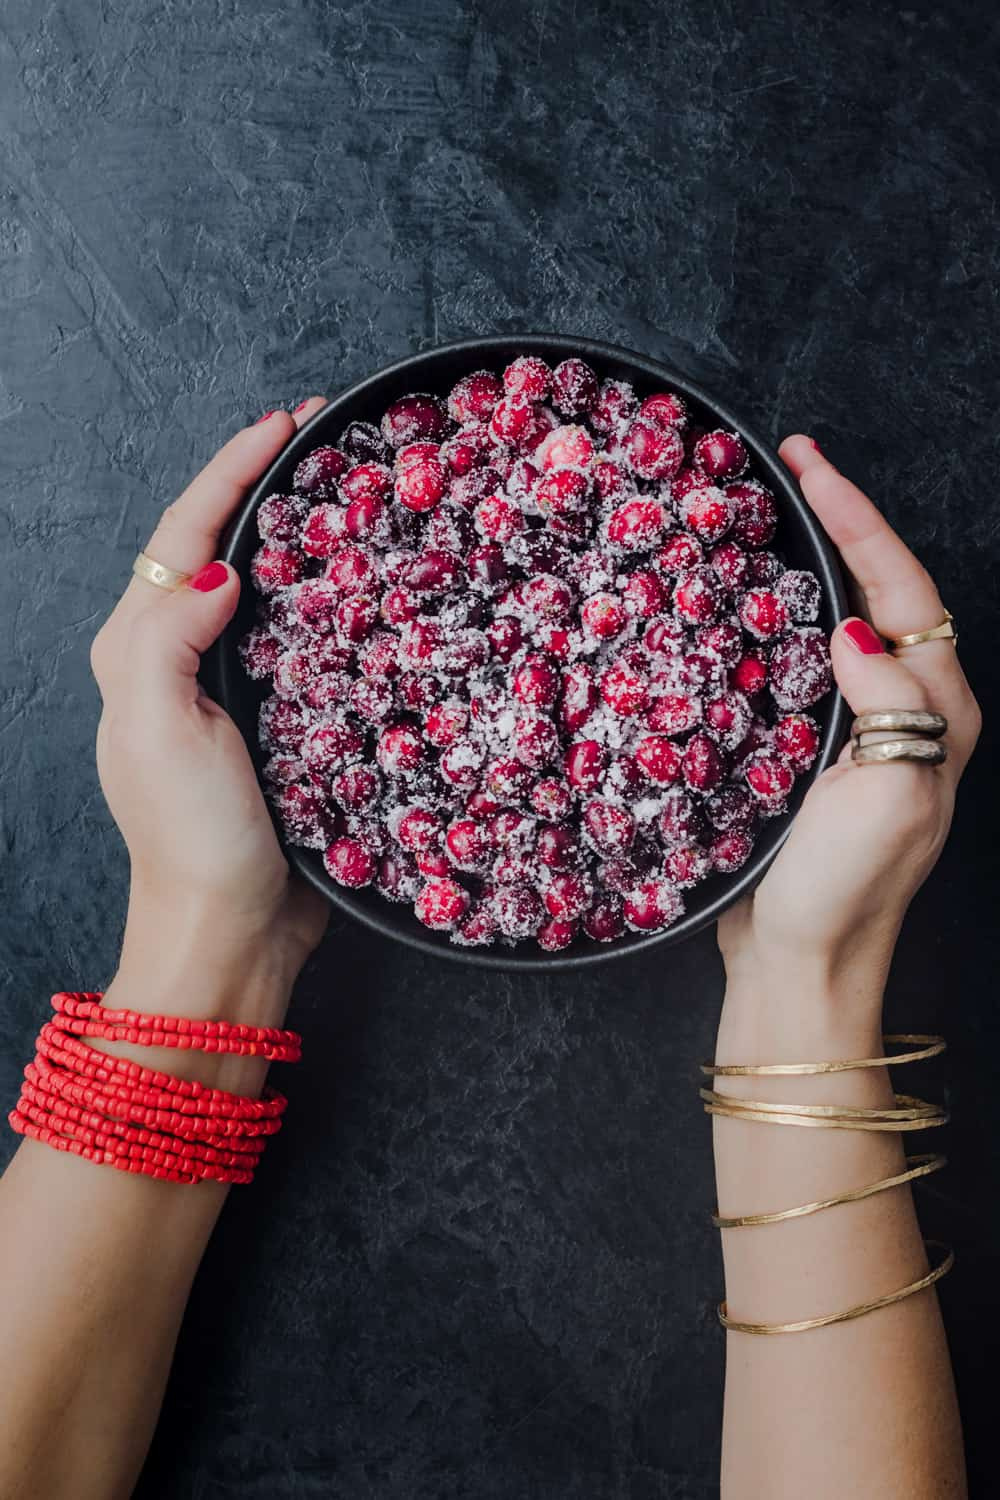 Daniela Gerson holding a bowl of black sugared cranberries; overhead shot.